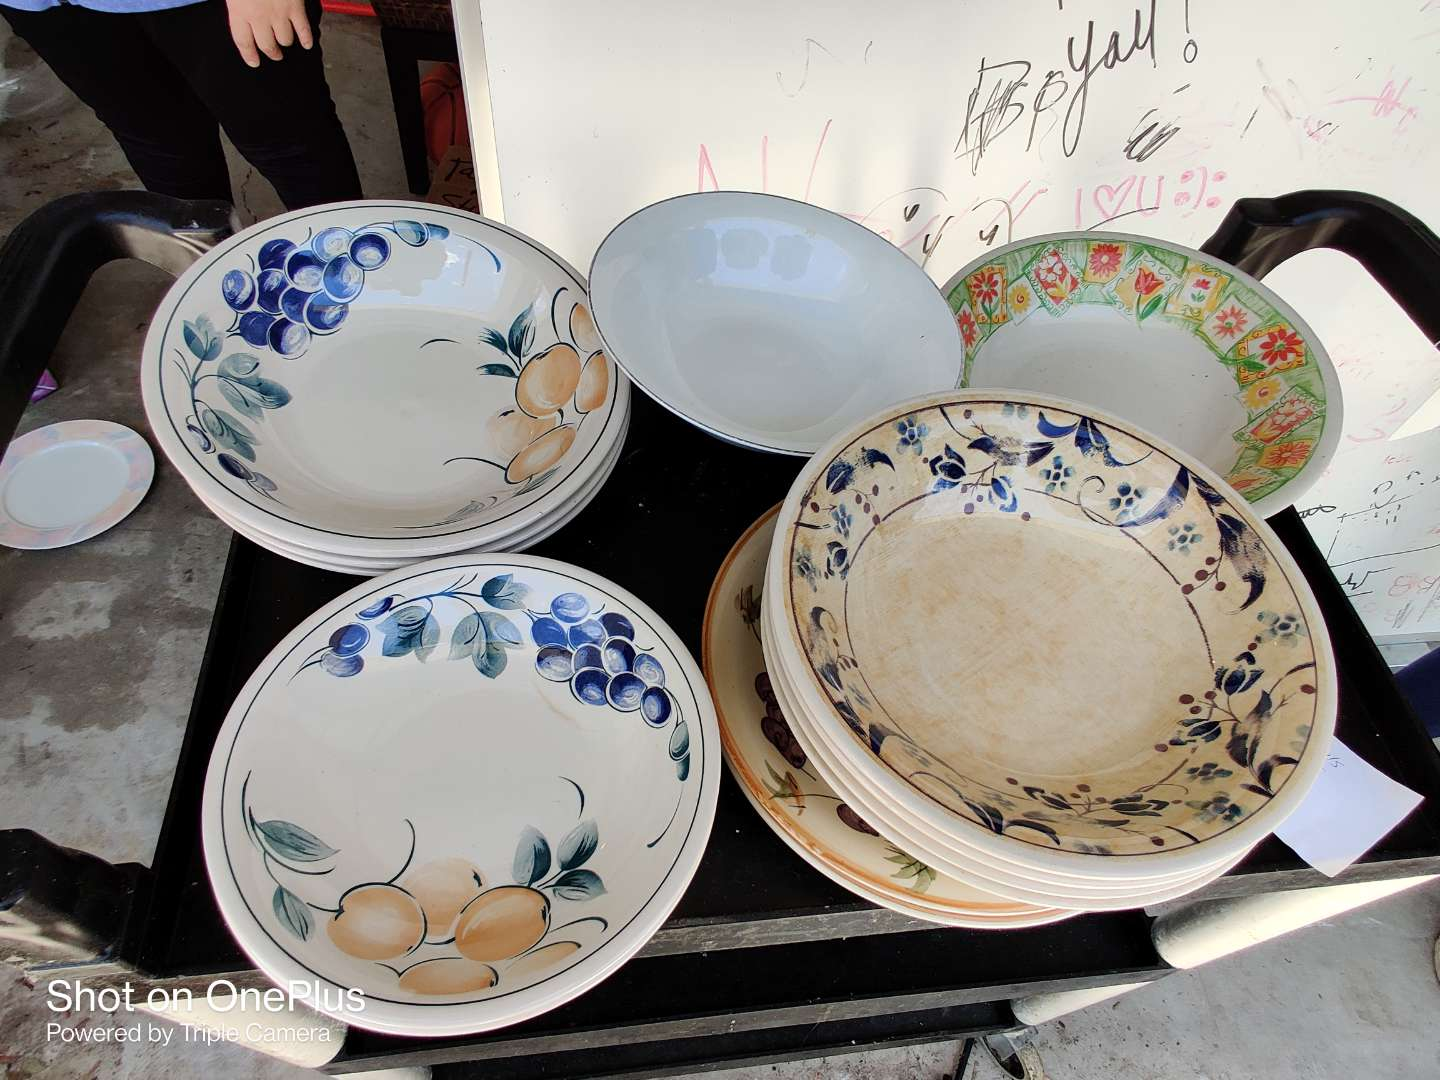 415 16 pieces of China bowls plates miscellaneous